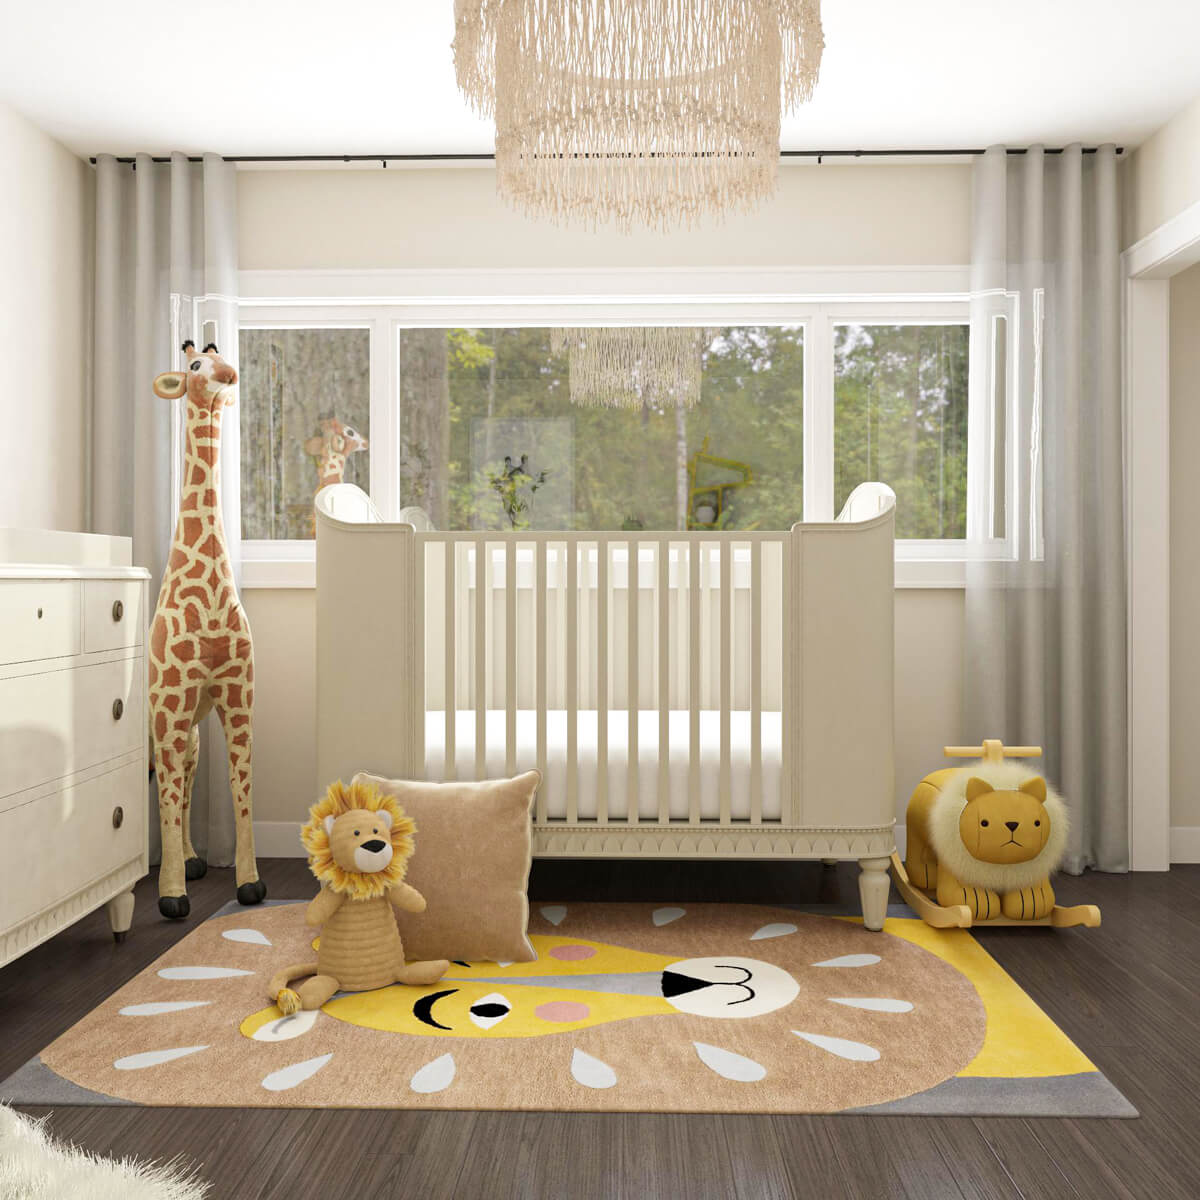 Cute Nursery Decorating Ideas for Baby Room - The ...